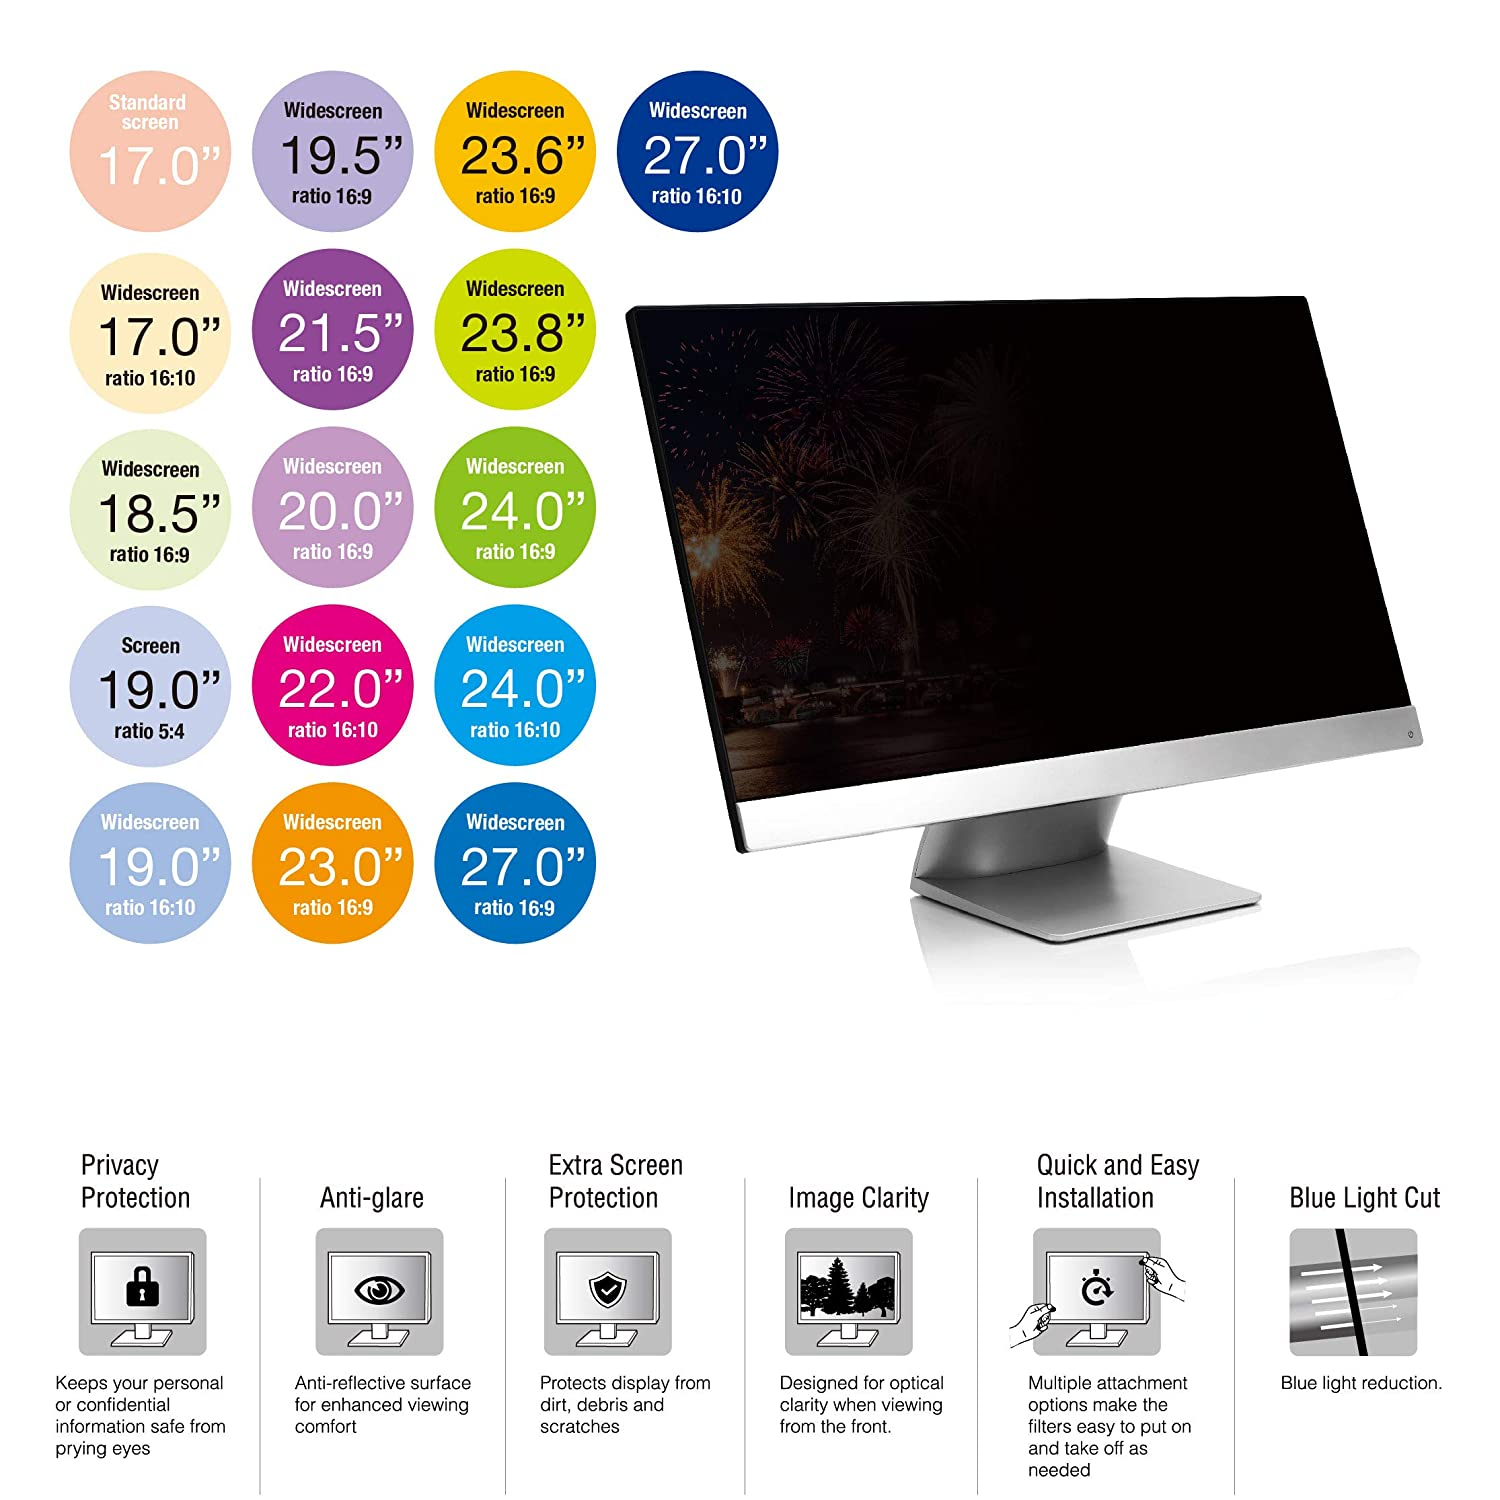 for Sceptre// Samsung// HP// LG// Acer// ASUS// Dell// Benq// AOC// ViewSonic/&PC SenseAGE Anti-Blue Light Privacy Screen Protectors Filter for Widescreen Monitor 23 inch 16:9 20.03x11.26 // 508.7 x 285.9mm